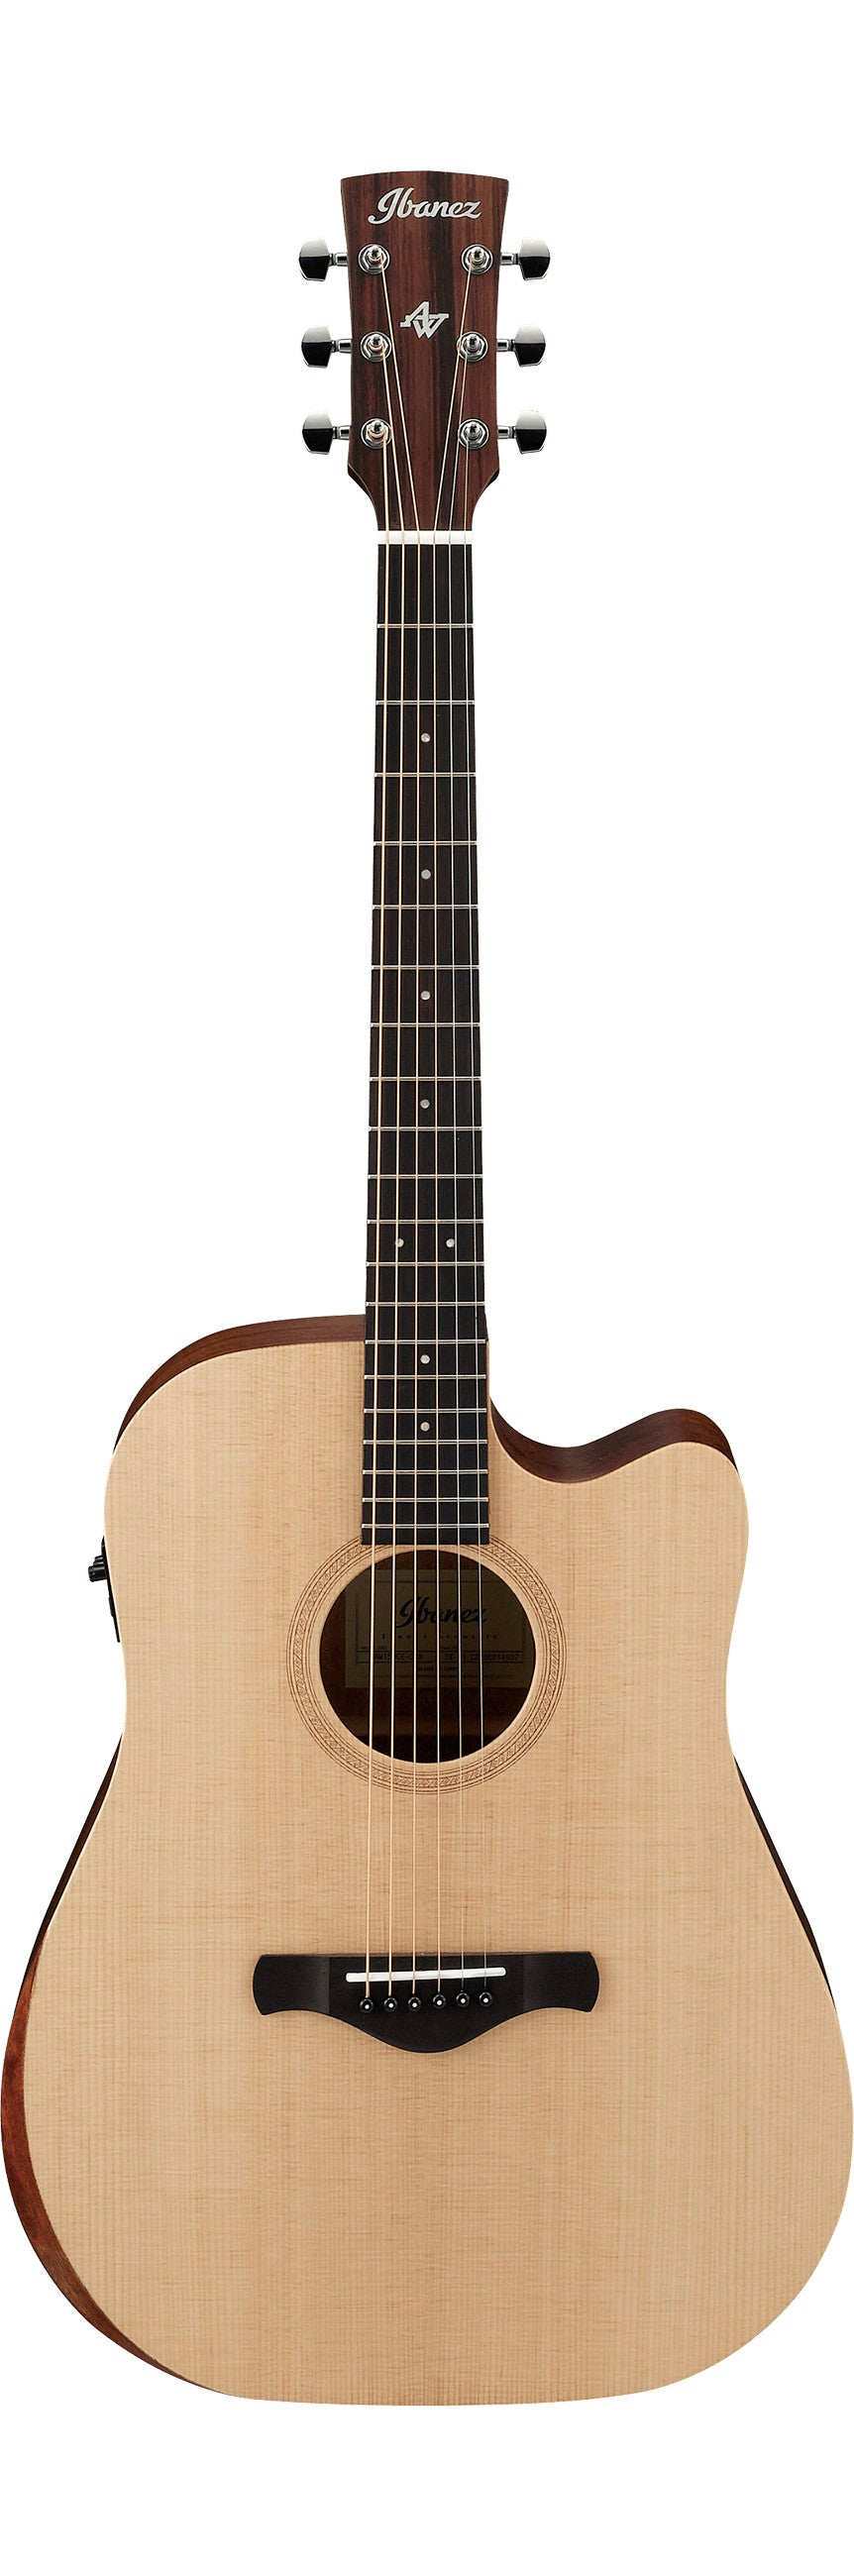 Ibanez AW150CE-OPN Artwood Solid Sitka Spruce top Open Pore - Natural